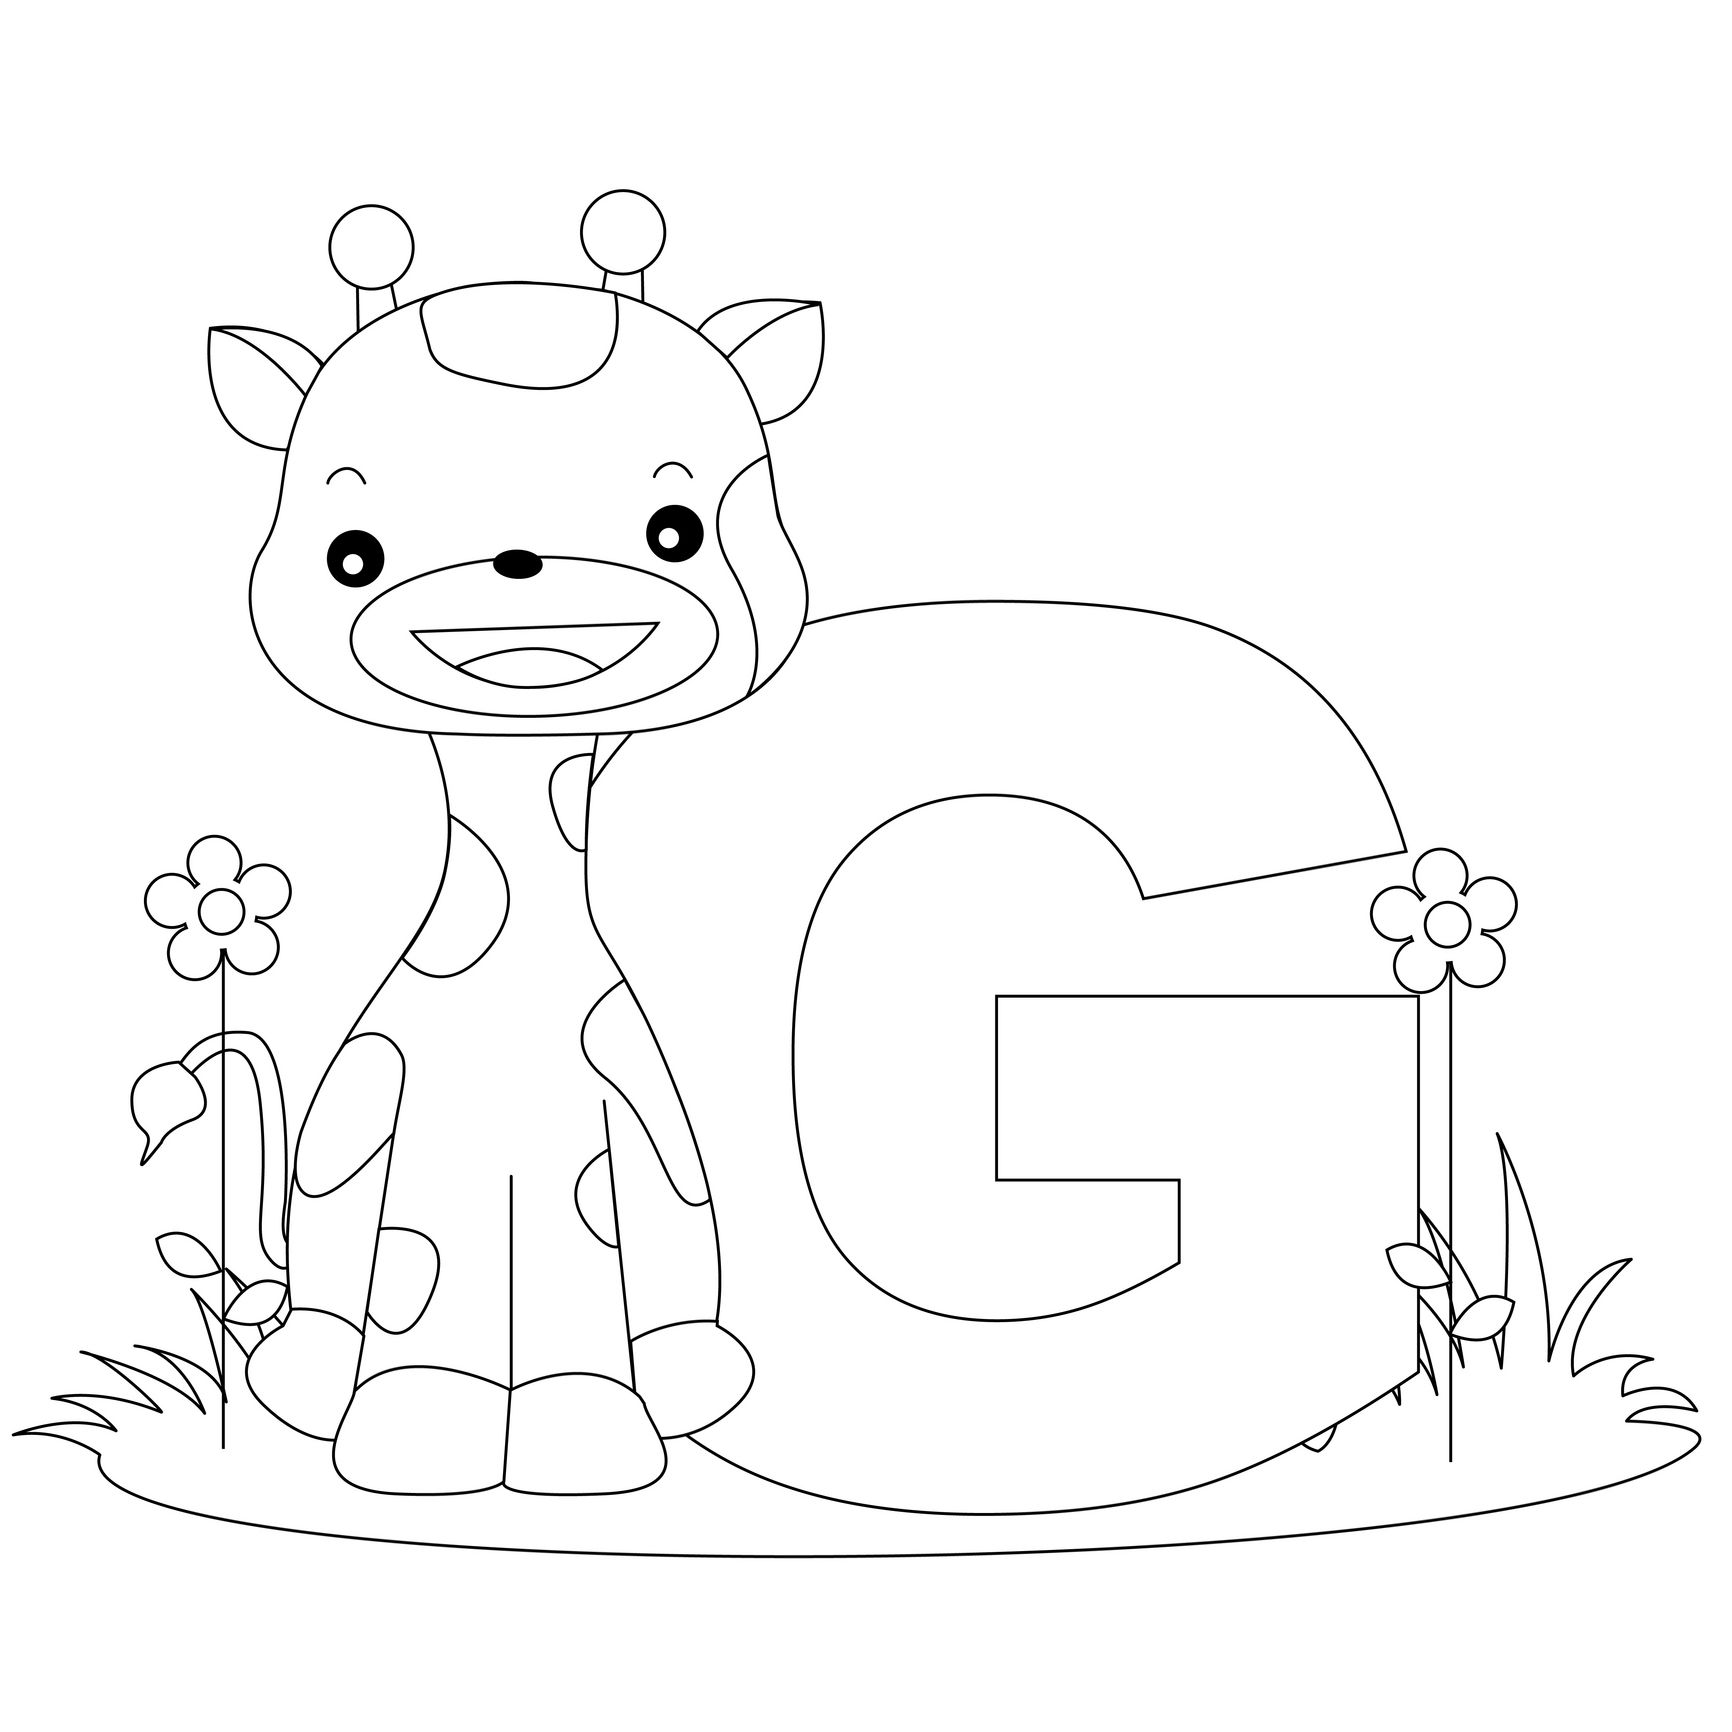 Alphabet pages for coloring book - Animal Alphabet Letter G Is For Giraffe Here S A Simple Alphabet Coloring Pagescoloring Pages For Kidsprintable